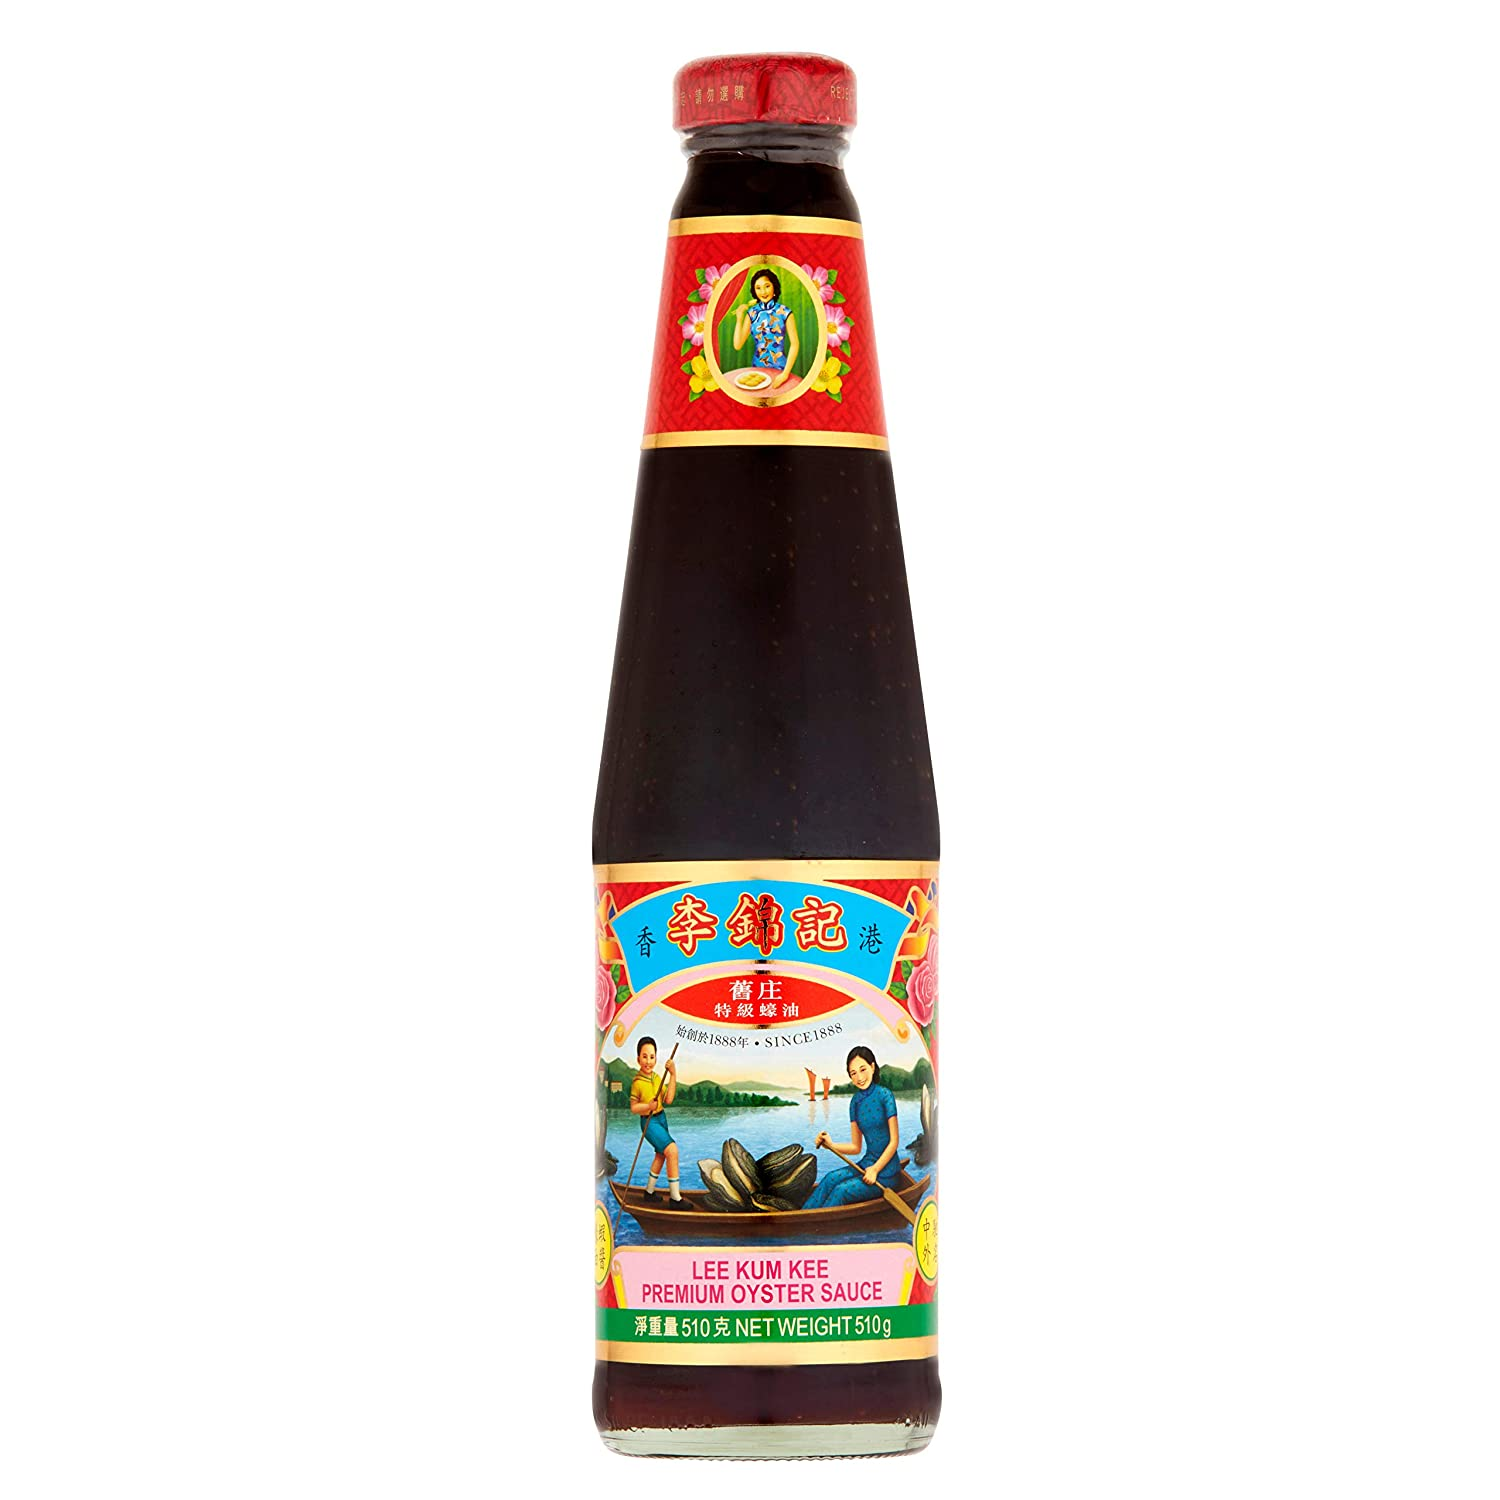 Lee Kum Kee Premium Oyster Flavored Sauce 18 Ounce (1 Pack)